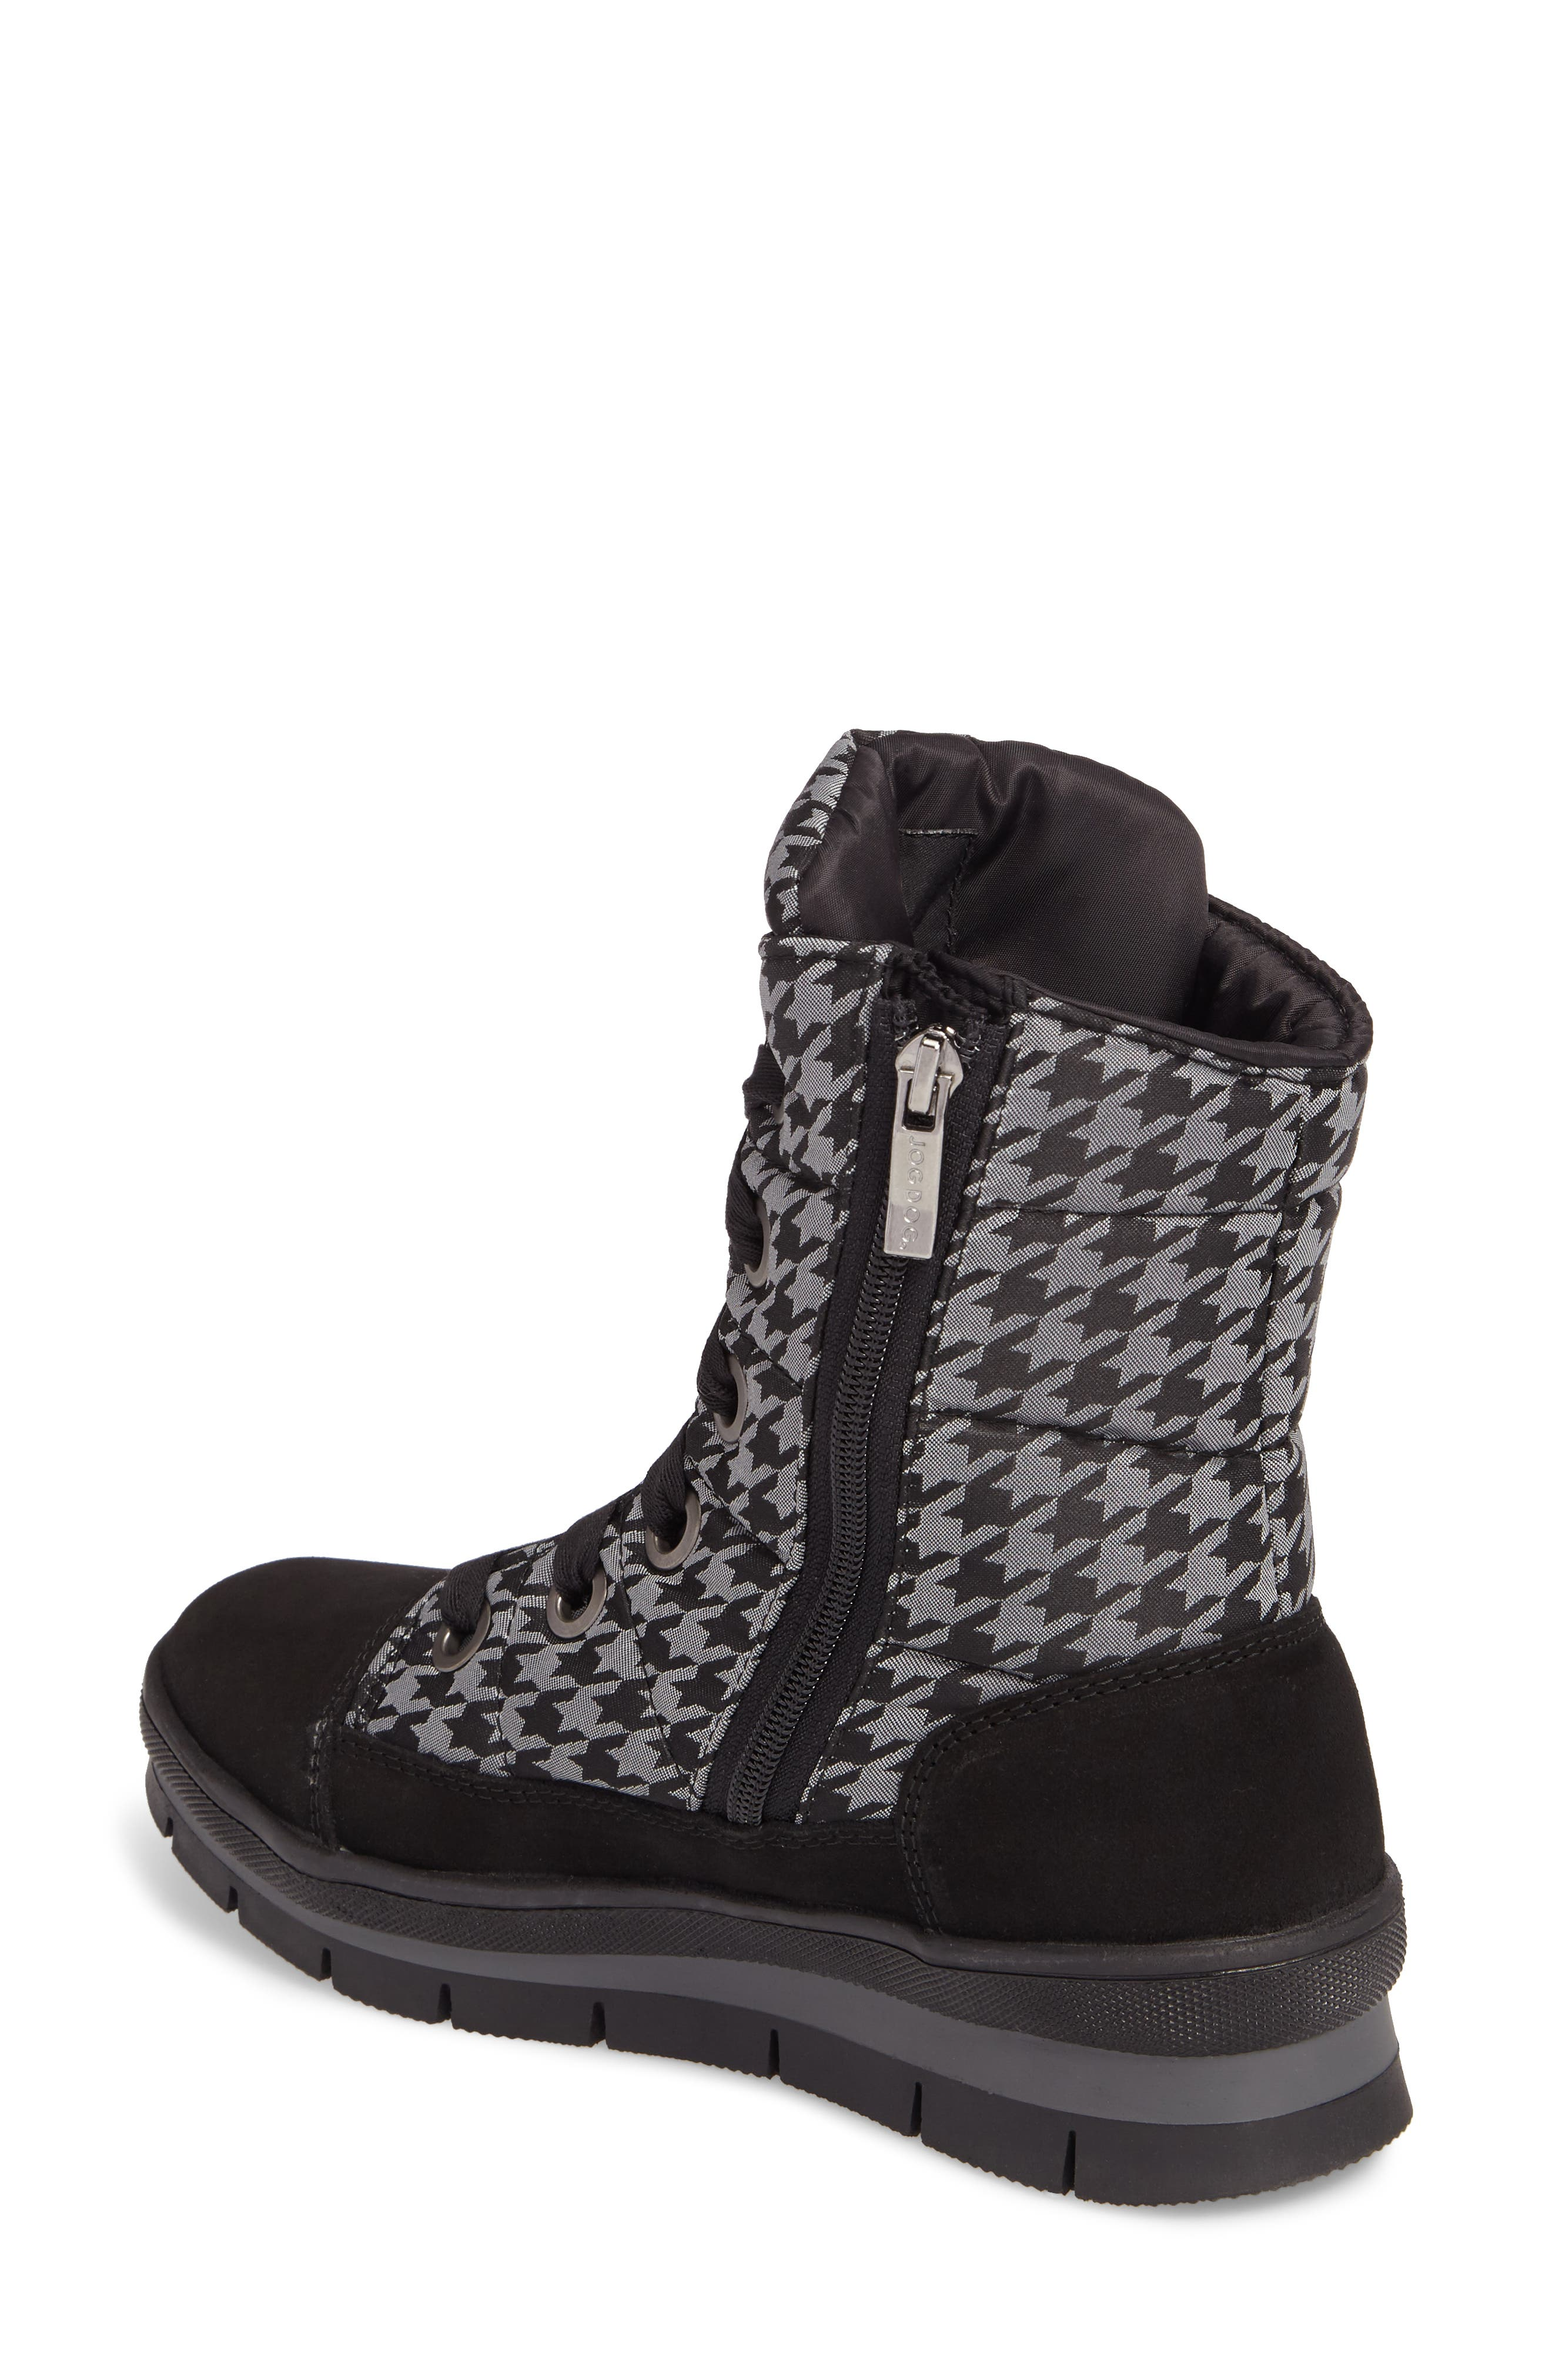 Meribel Waterproof Channel Quilted Lace Up Sneaker Boot,                             Alternate thumbnail 2, color,                             008